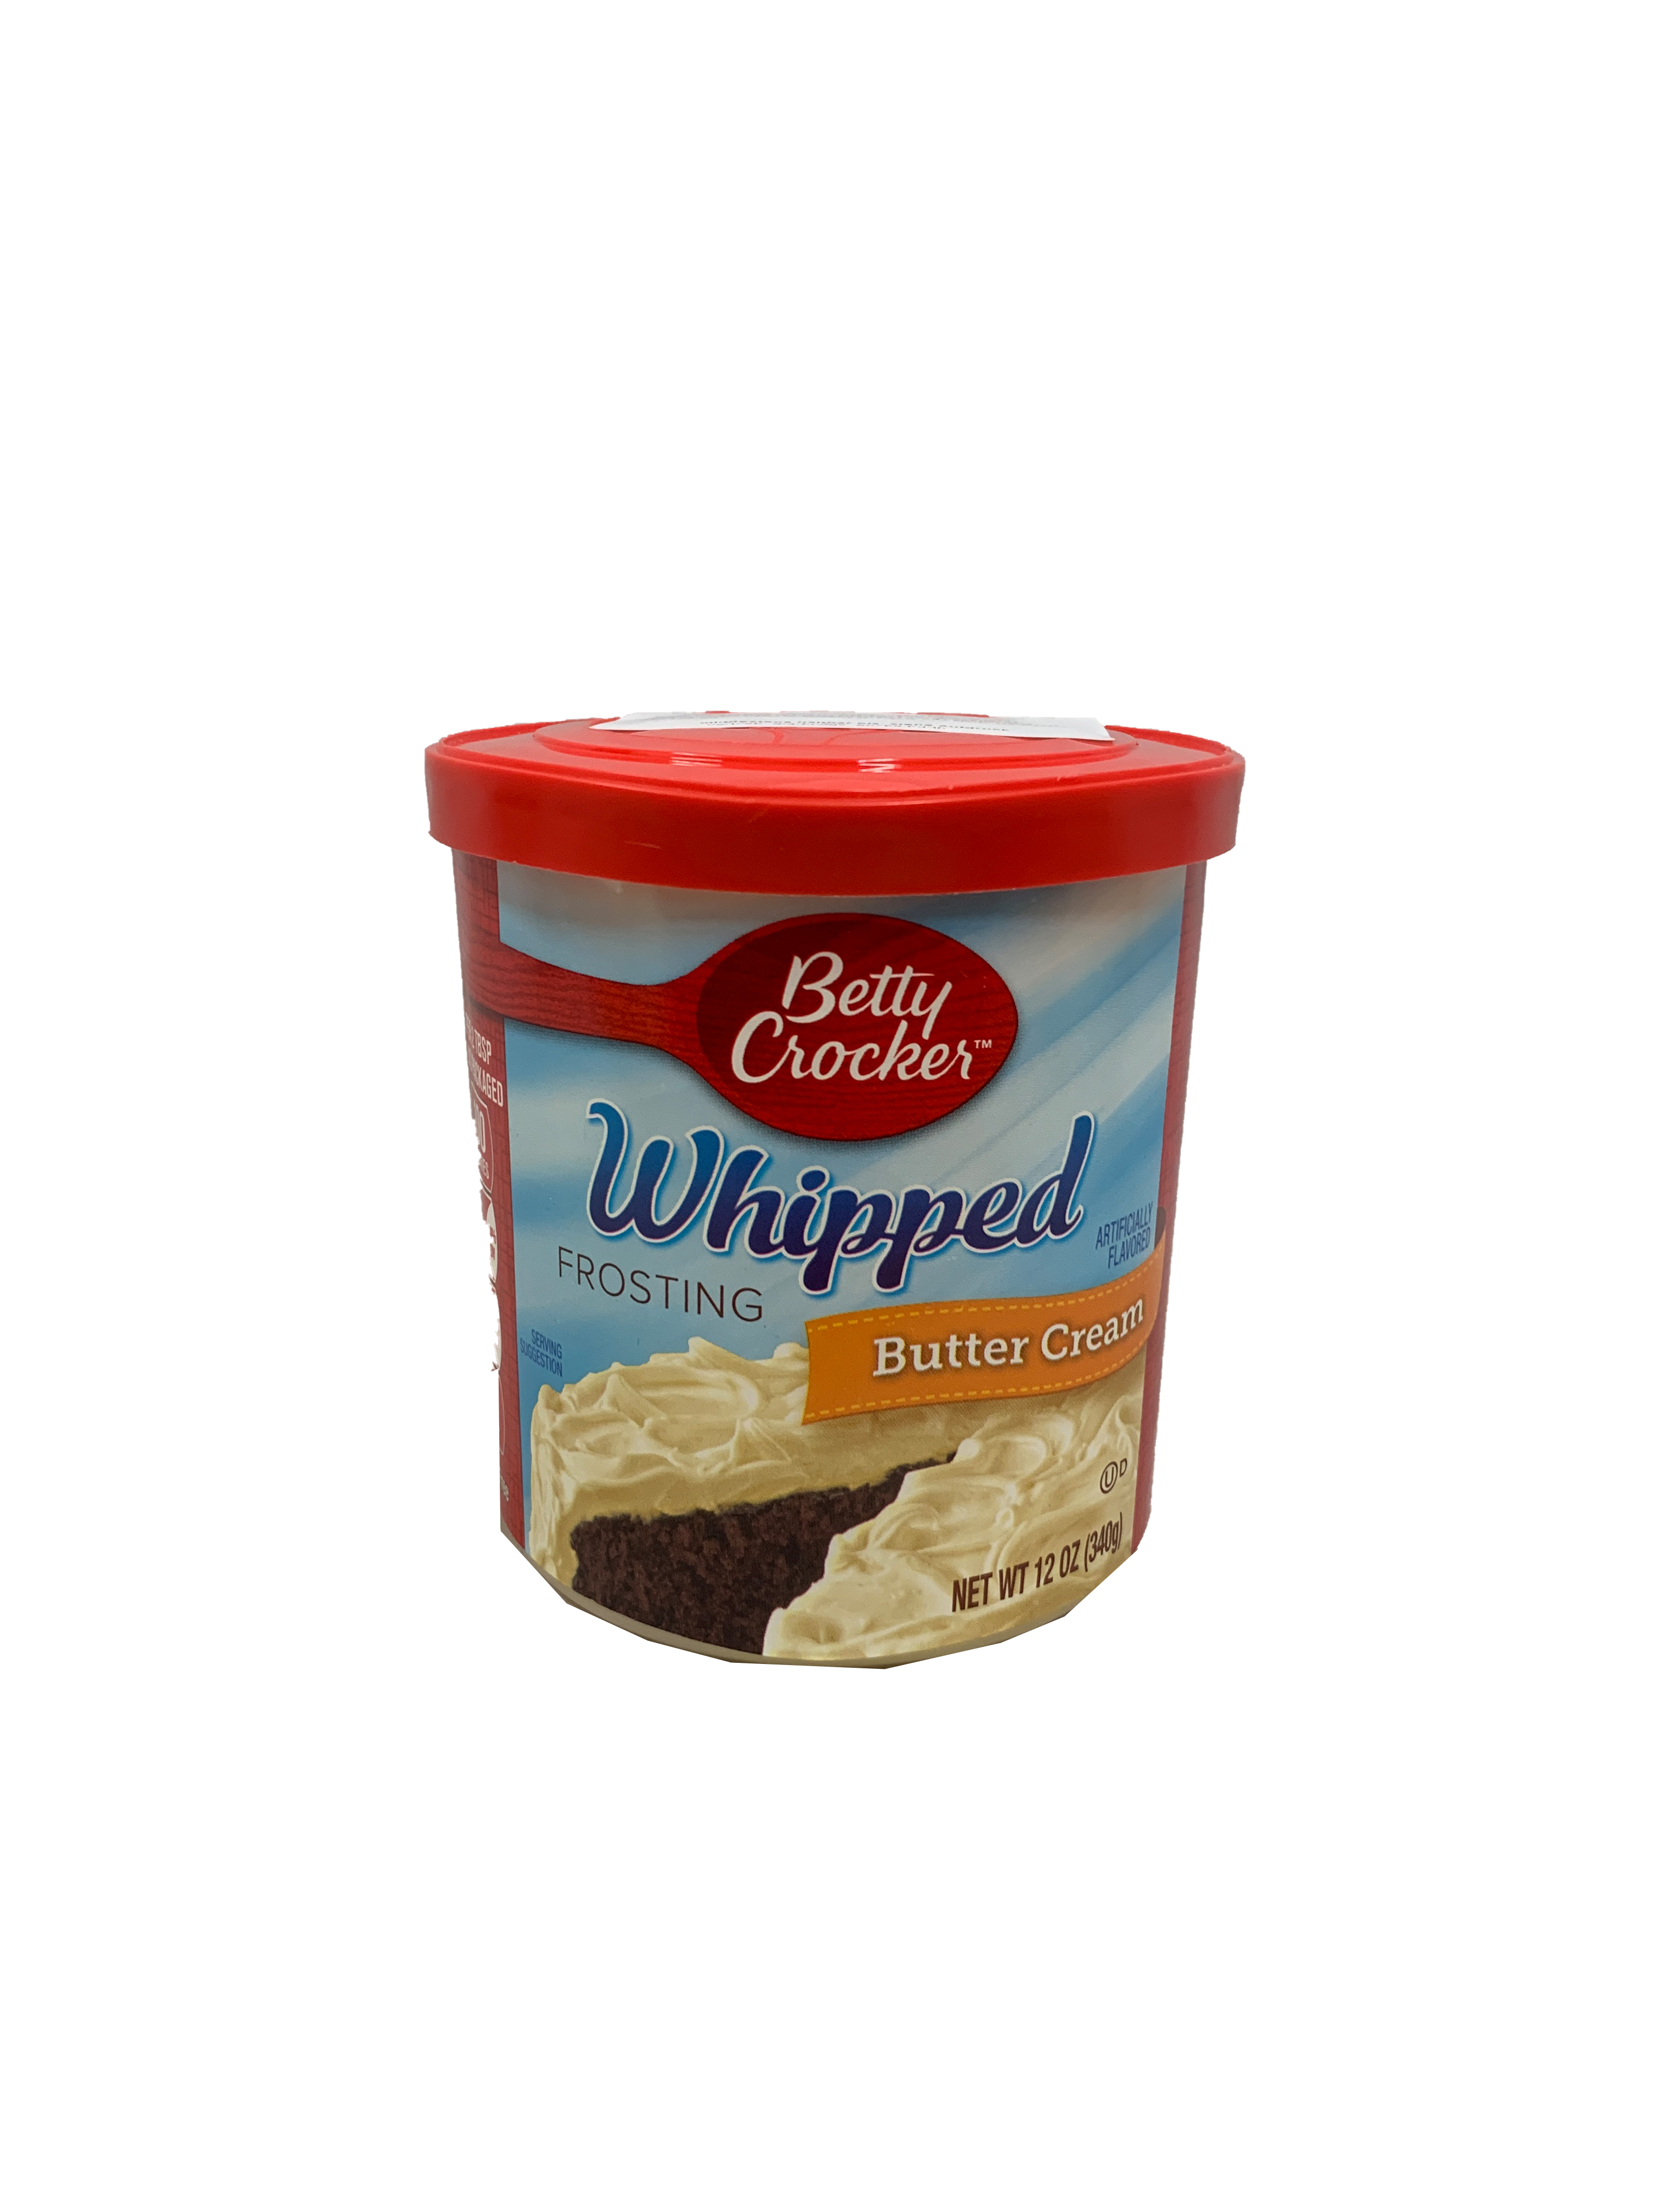 Betty Crocker Whipped Frosting - Butter Cream